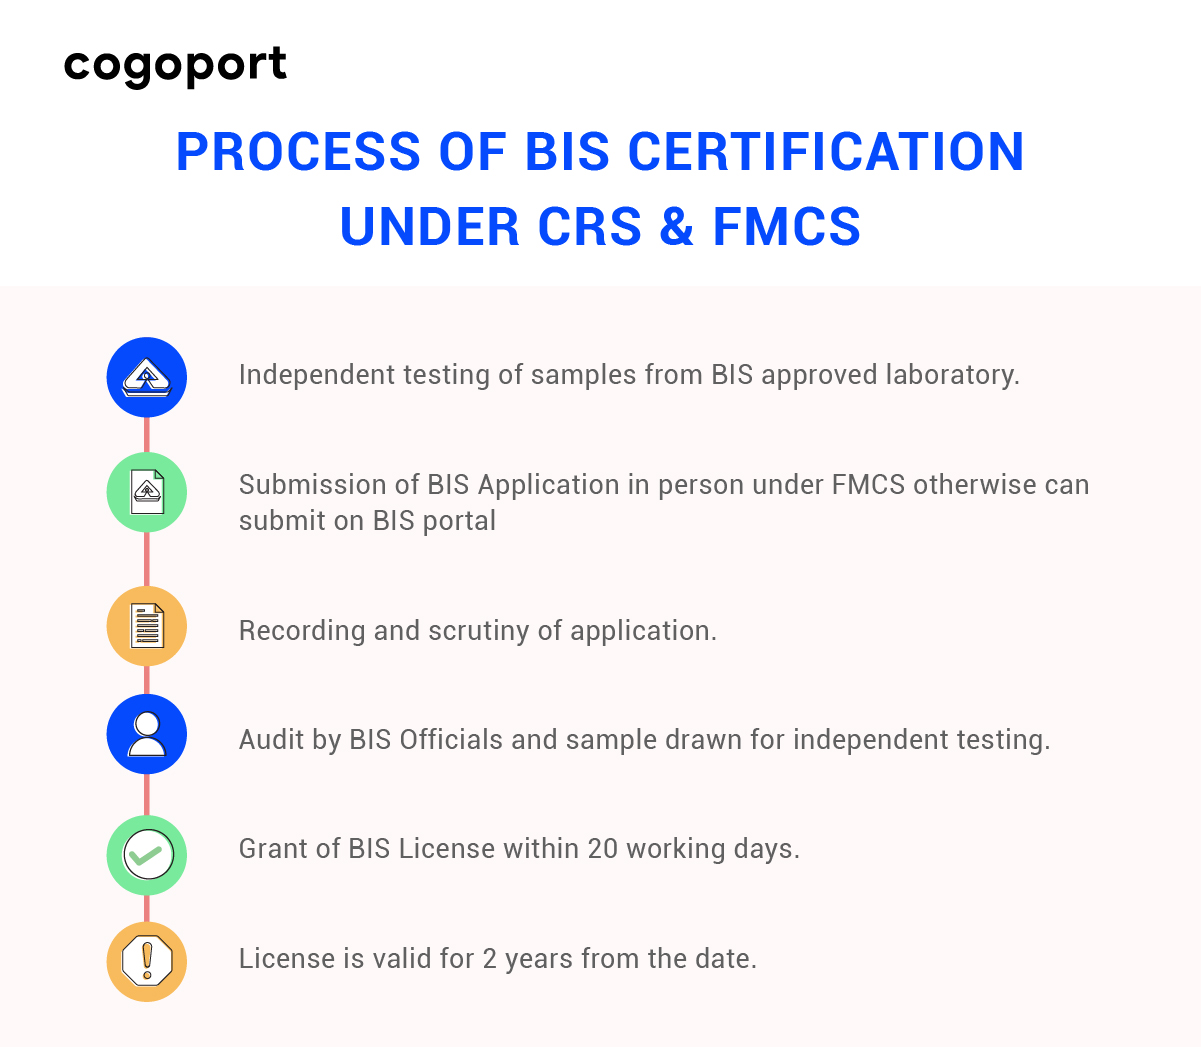 BIS certification process for imports